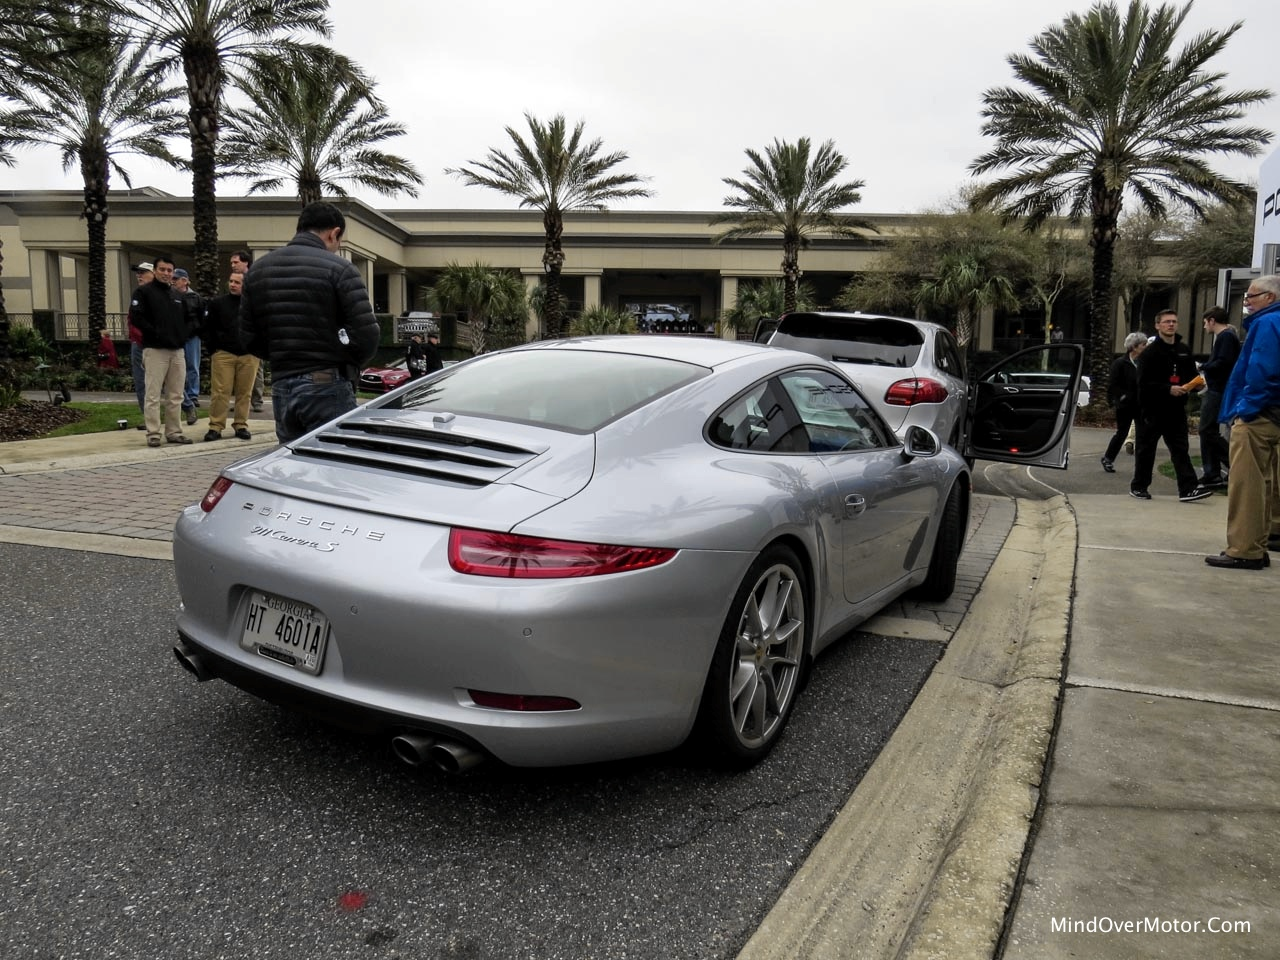 2014 Porsche 911 Carrera S Rear Right